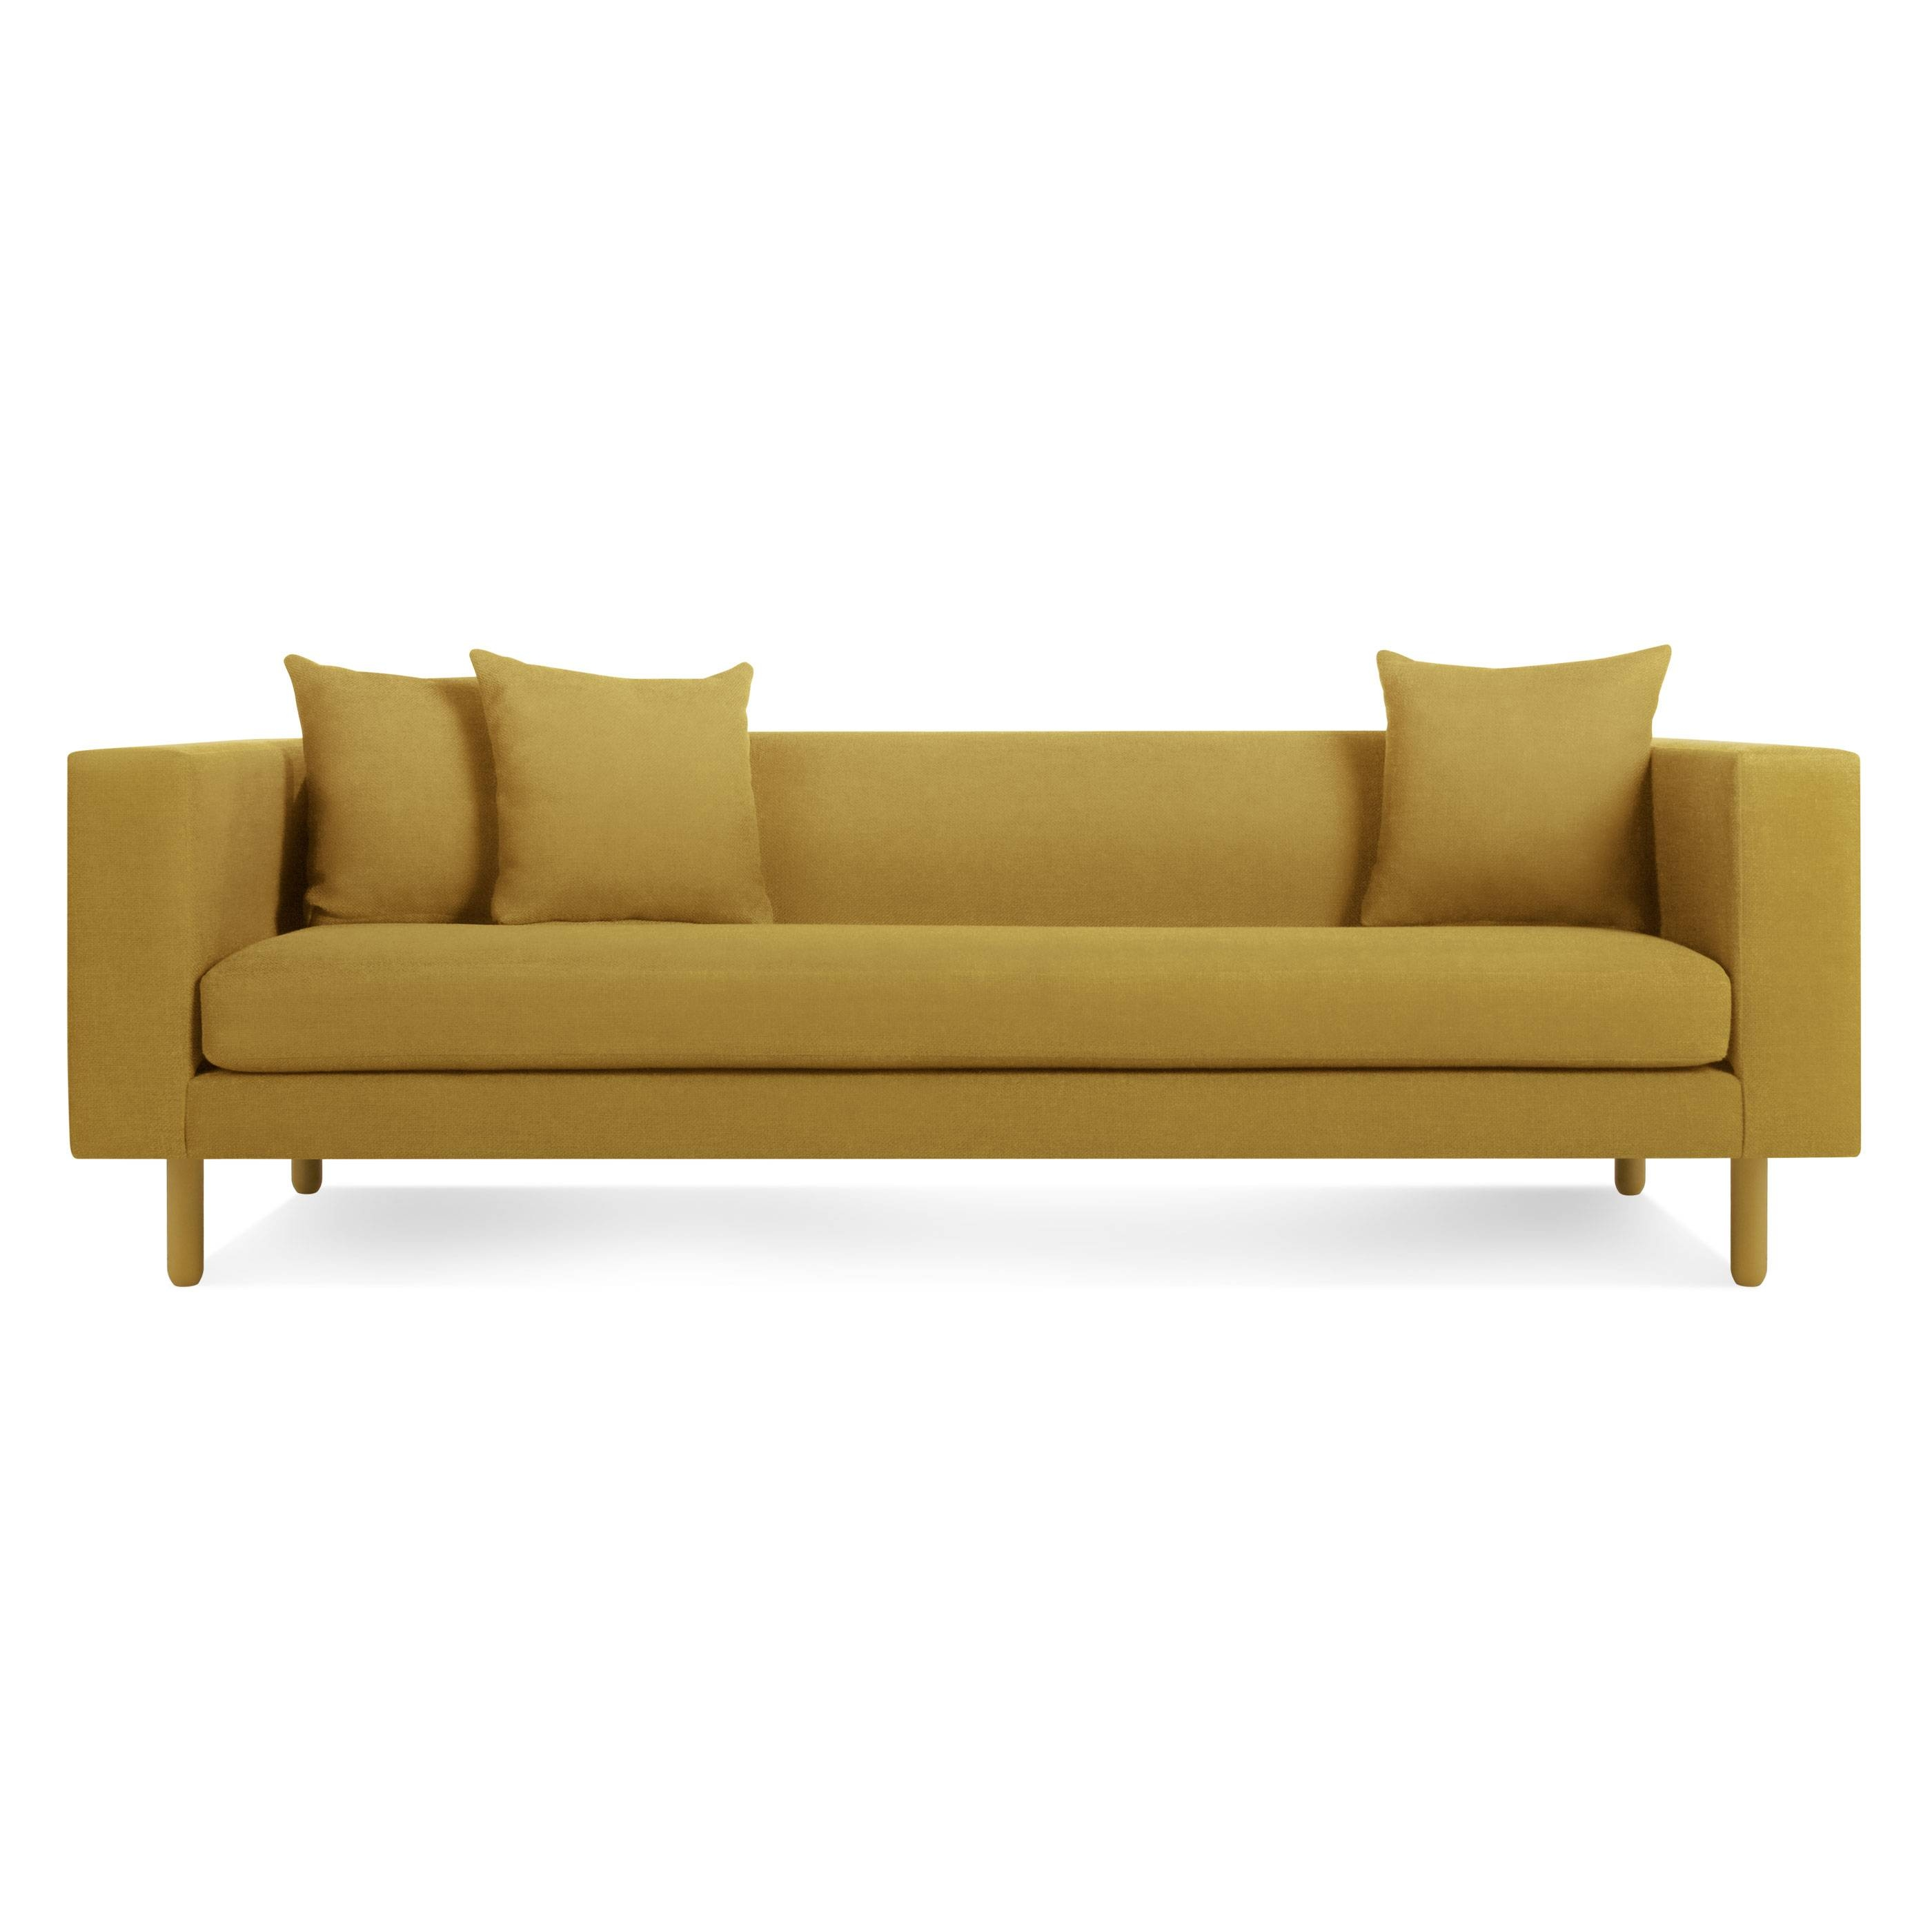 Mono Sofa - Single Cushion Sofa | Blu Dot pertaining to One Cushion Sofas (Image 12 of 30)